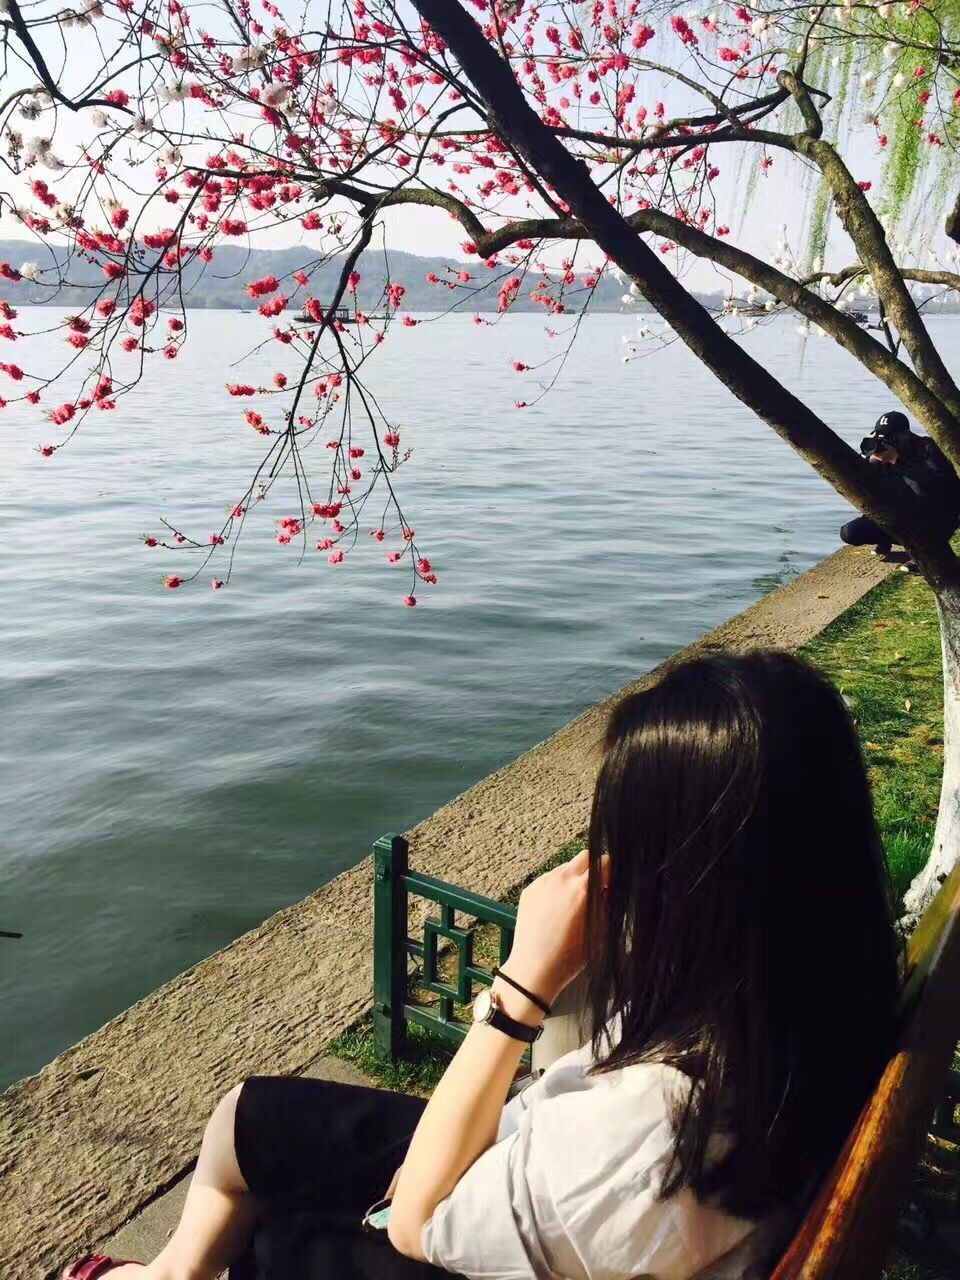 water, tree, nature, real people, one person, sitting, beauty in nature, rear view, day, leisure activity, lake, women, branch, outdoors, sky, people